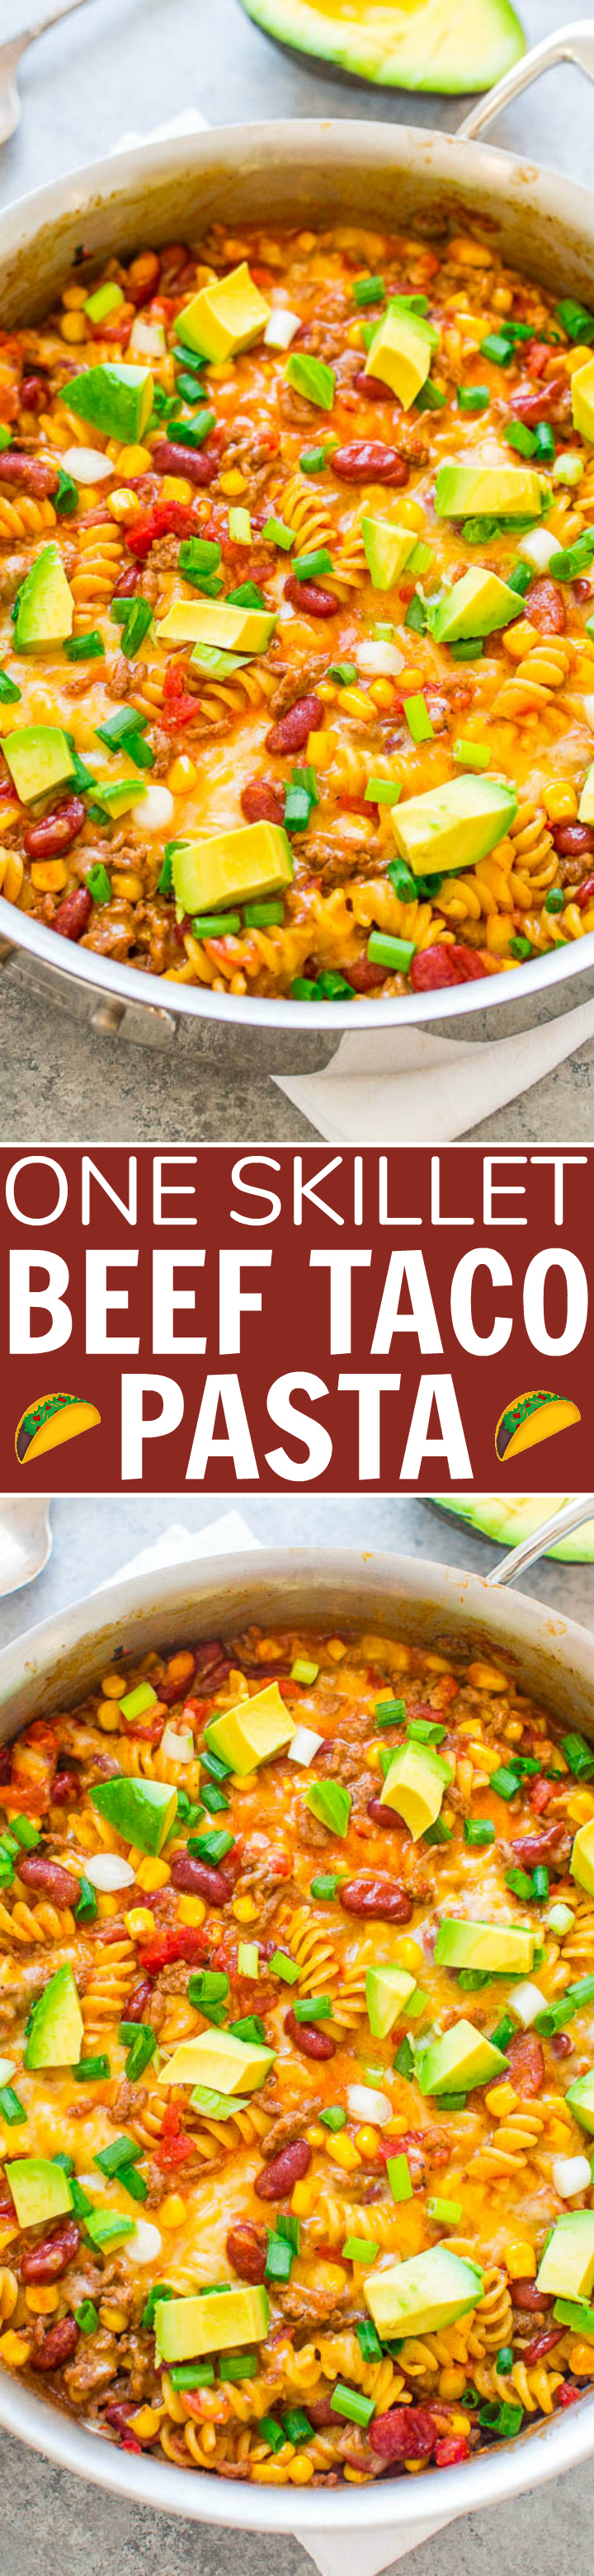 One Skillet Beef Taco Pasta - An EASY recipe that's ready in 20 minutes, made in ONE skillet, and loaded with Mexican-inspired flavors!! A family favorite that's great for busy weeknights!!